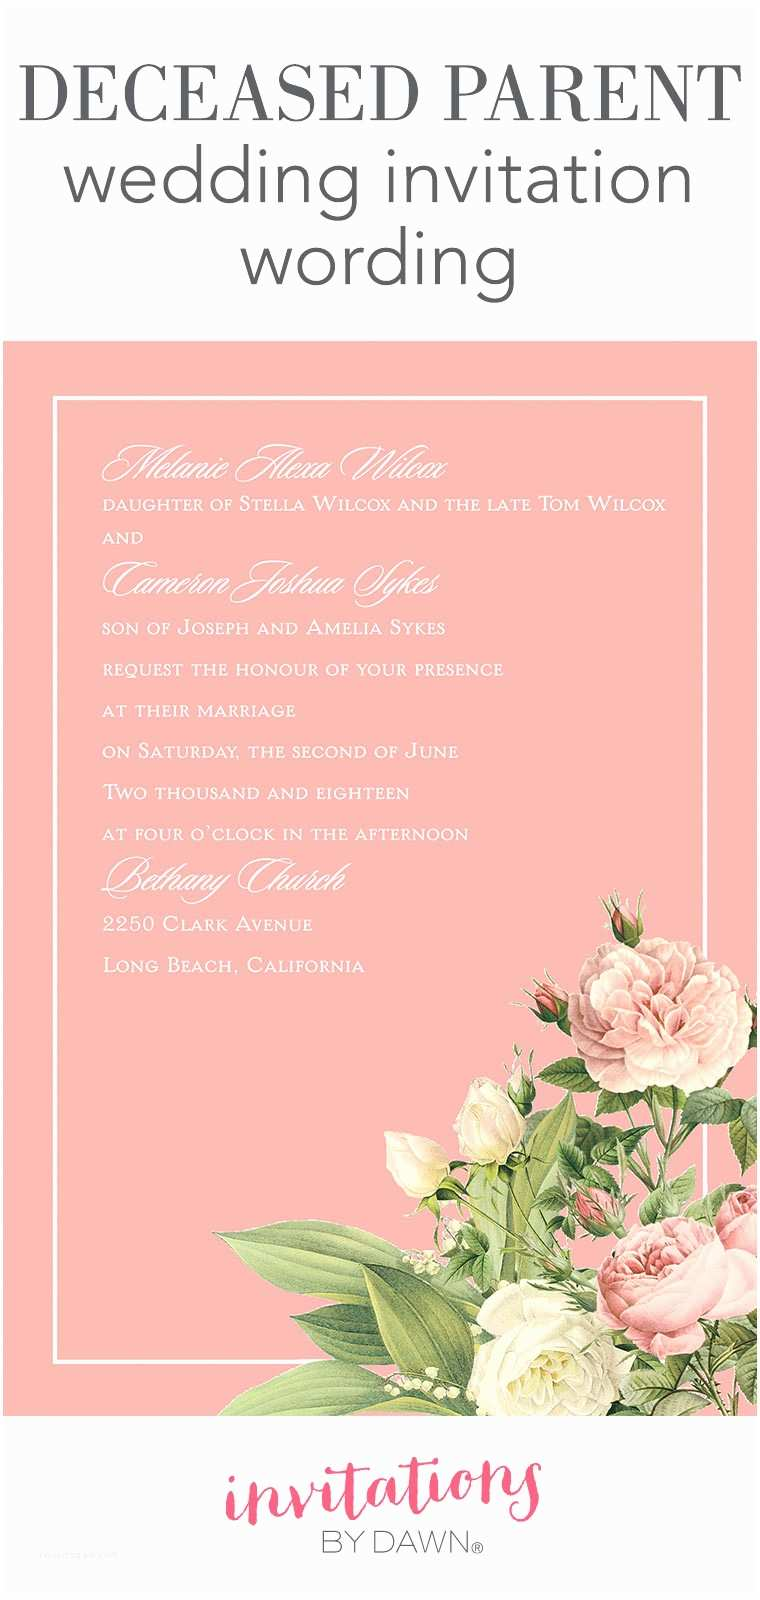 Wedding Invitations Under 50 Cents Each New Wedding Invitation Wording Honor or Honour